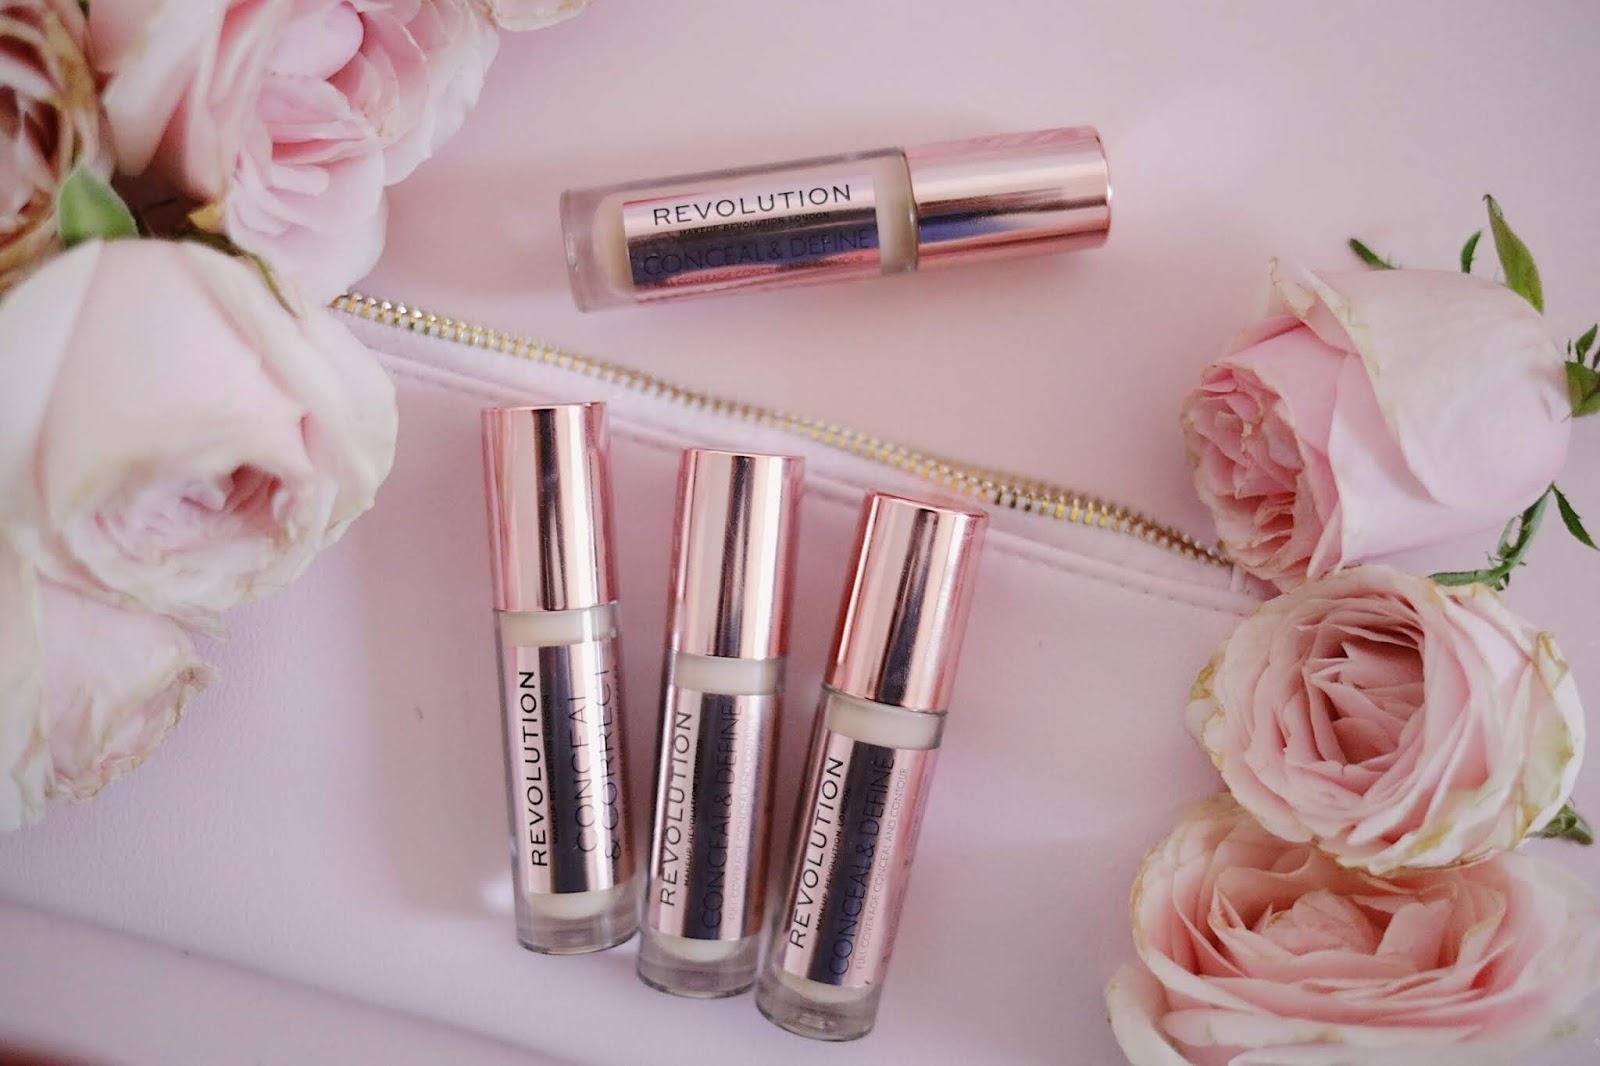 REVOLUTION CONCEAL AND DEFINE CONCEALER ,MAKEUP REVOLUTION , makeuprevolutionbeauty,;rosemademoiselle, rose mademoiselle , blog beauté , Paris